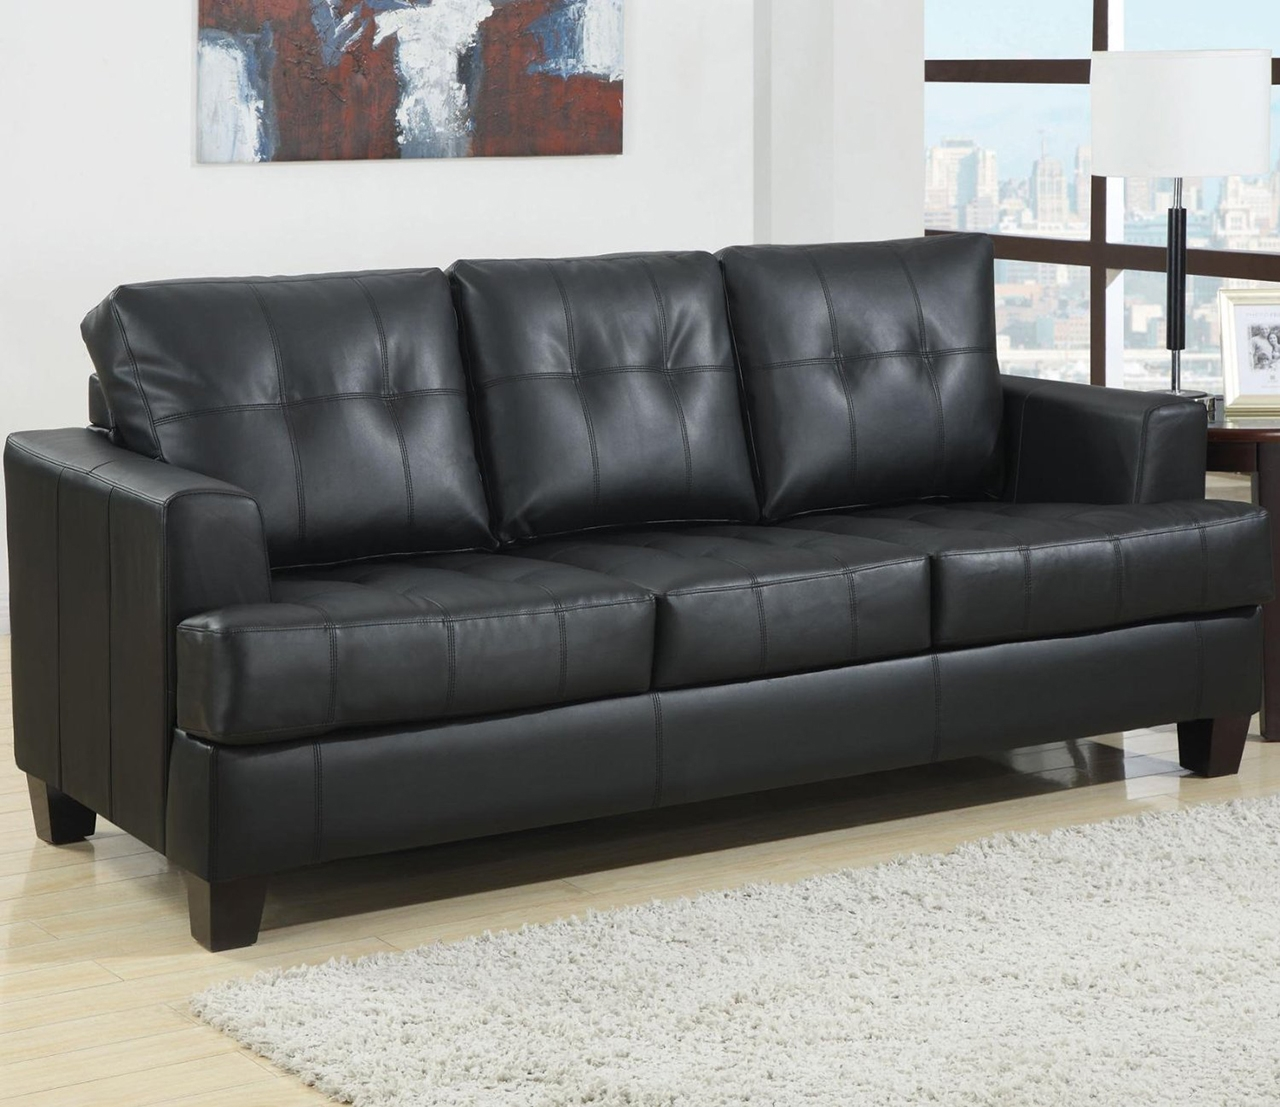 12 best collection of 70 sleeper sofa. Black Bedroom Furniture Sets. Home Design Ideas